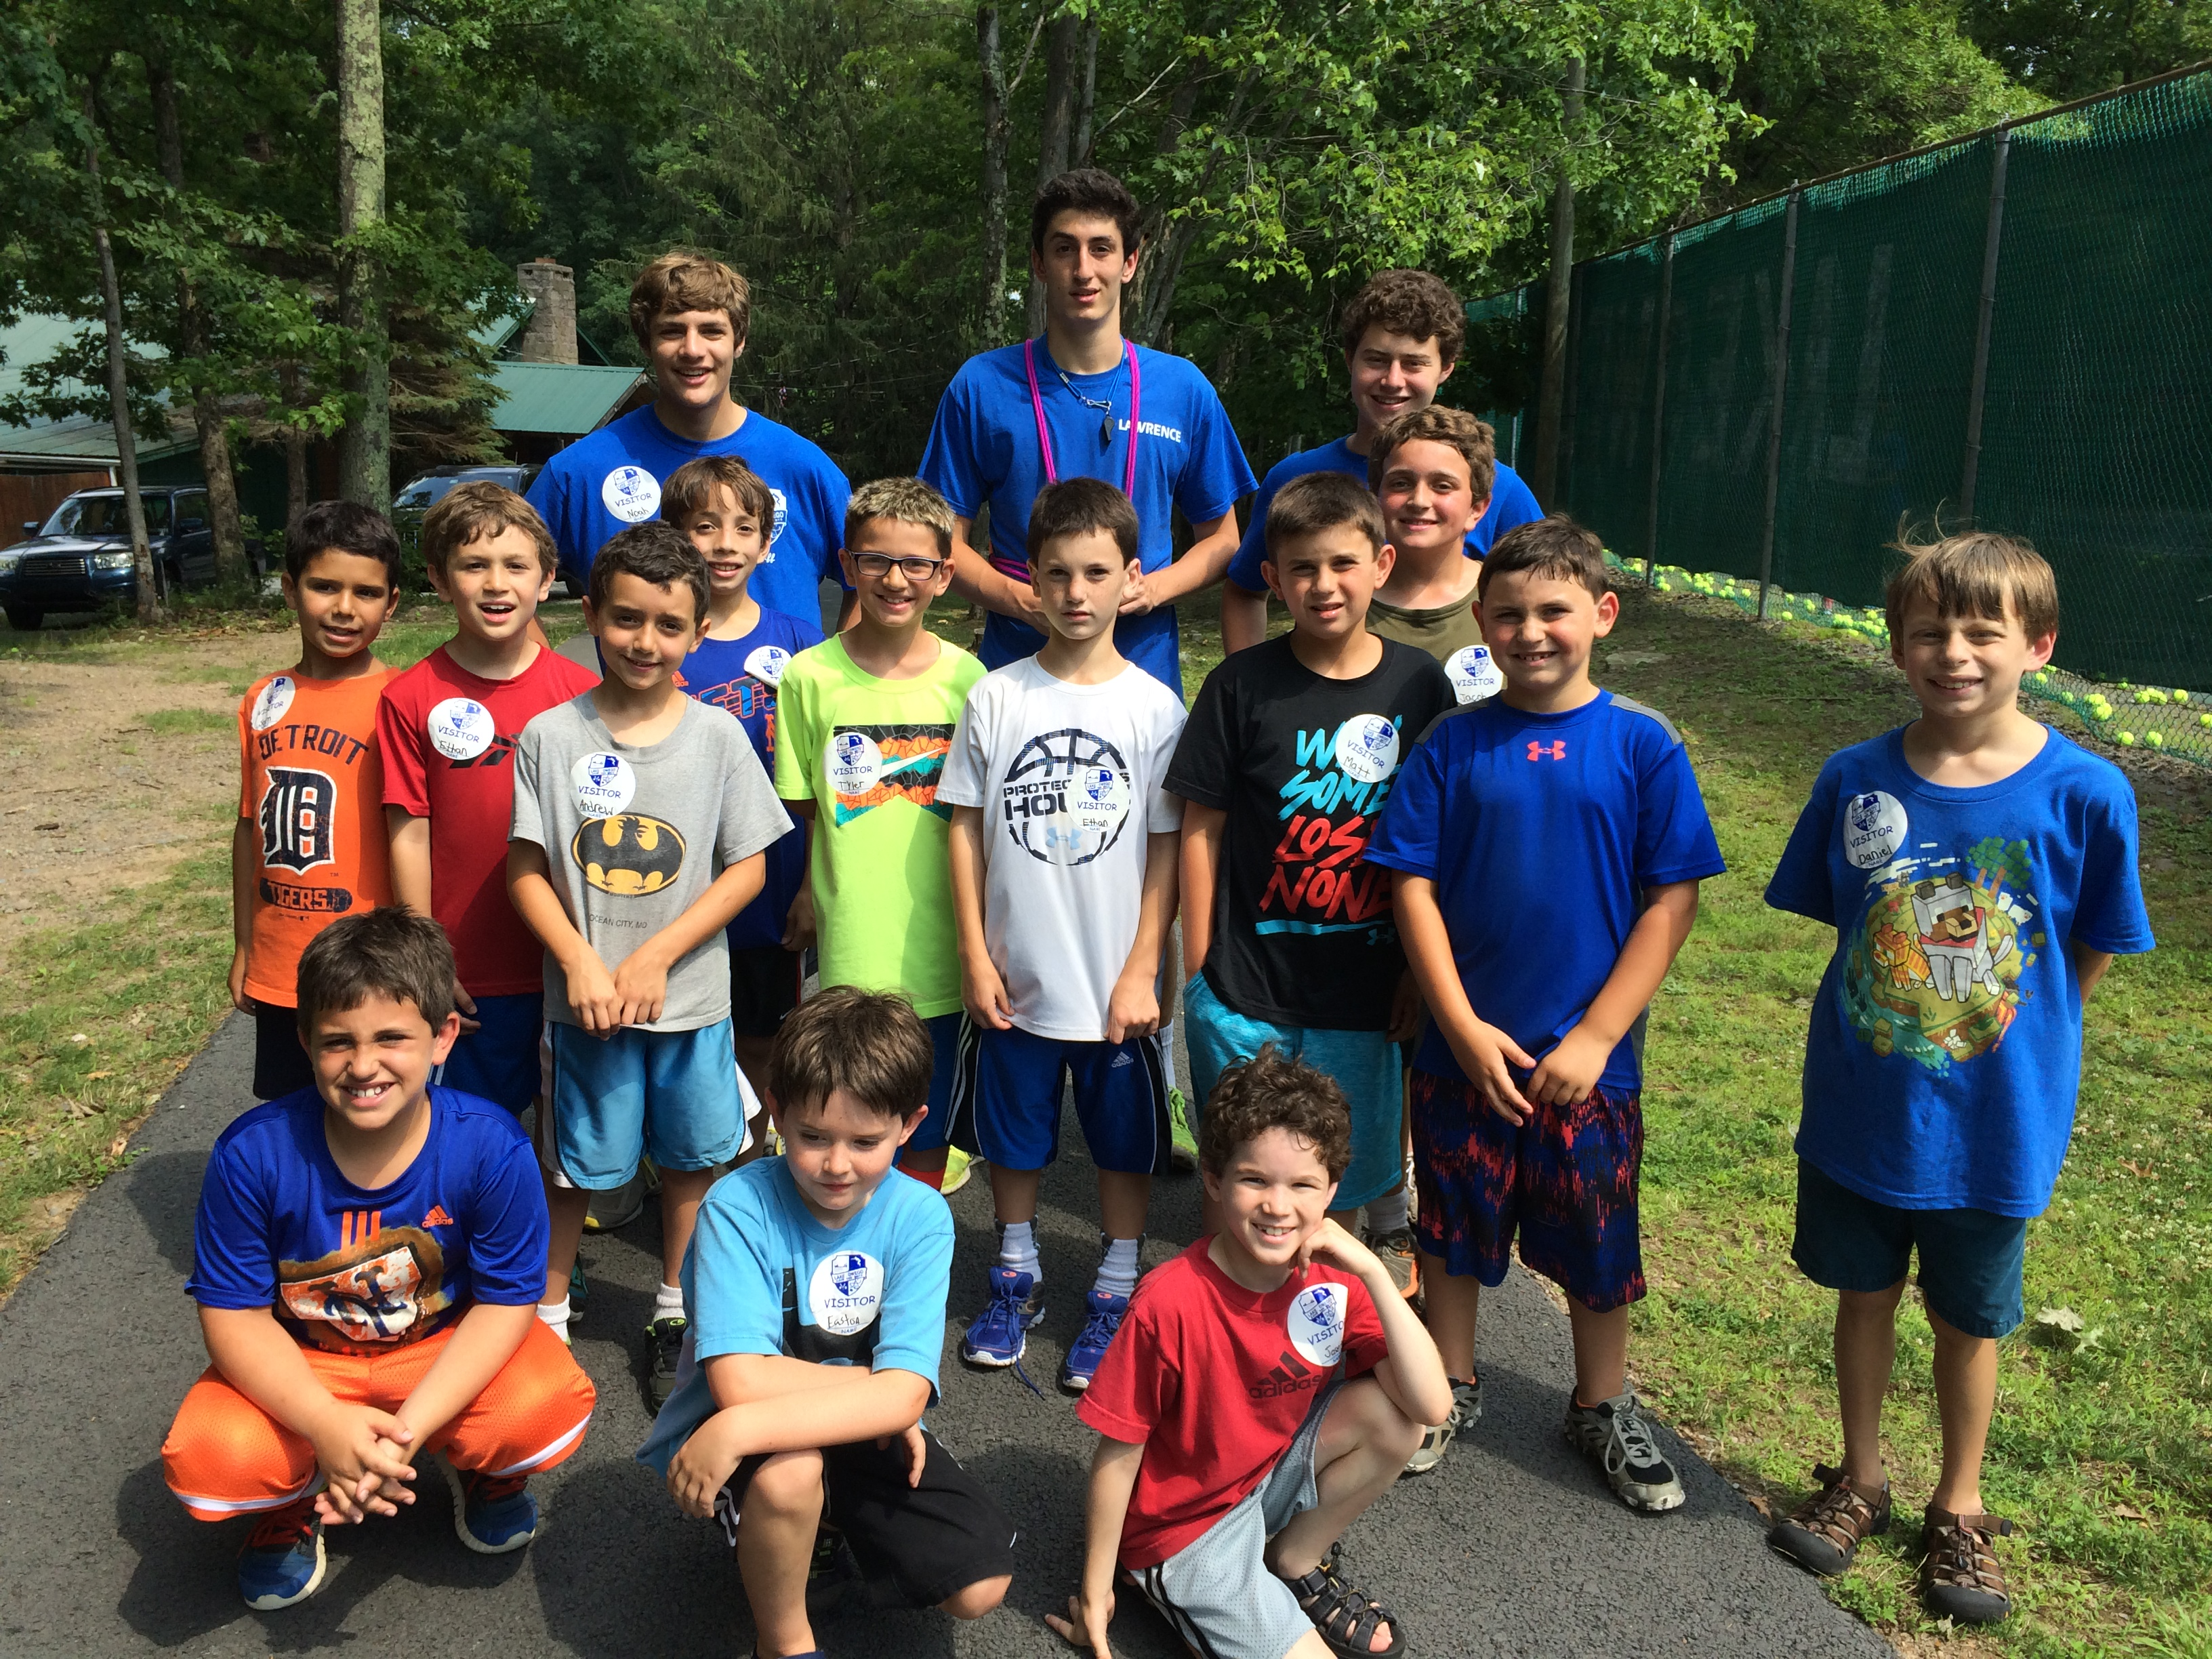 We had the best time welcoming our first group of 13 Explorers who came to  try our camp for a weekend. Counselors Larry, Micah, Ben and Noah, ...